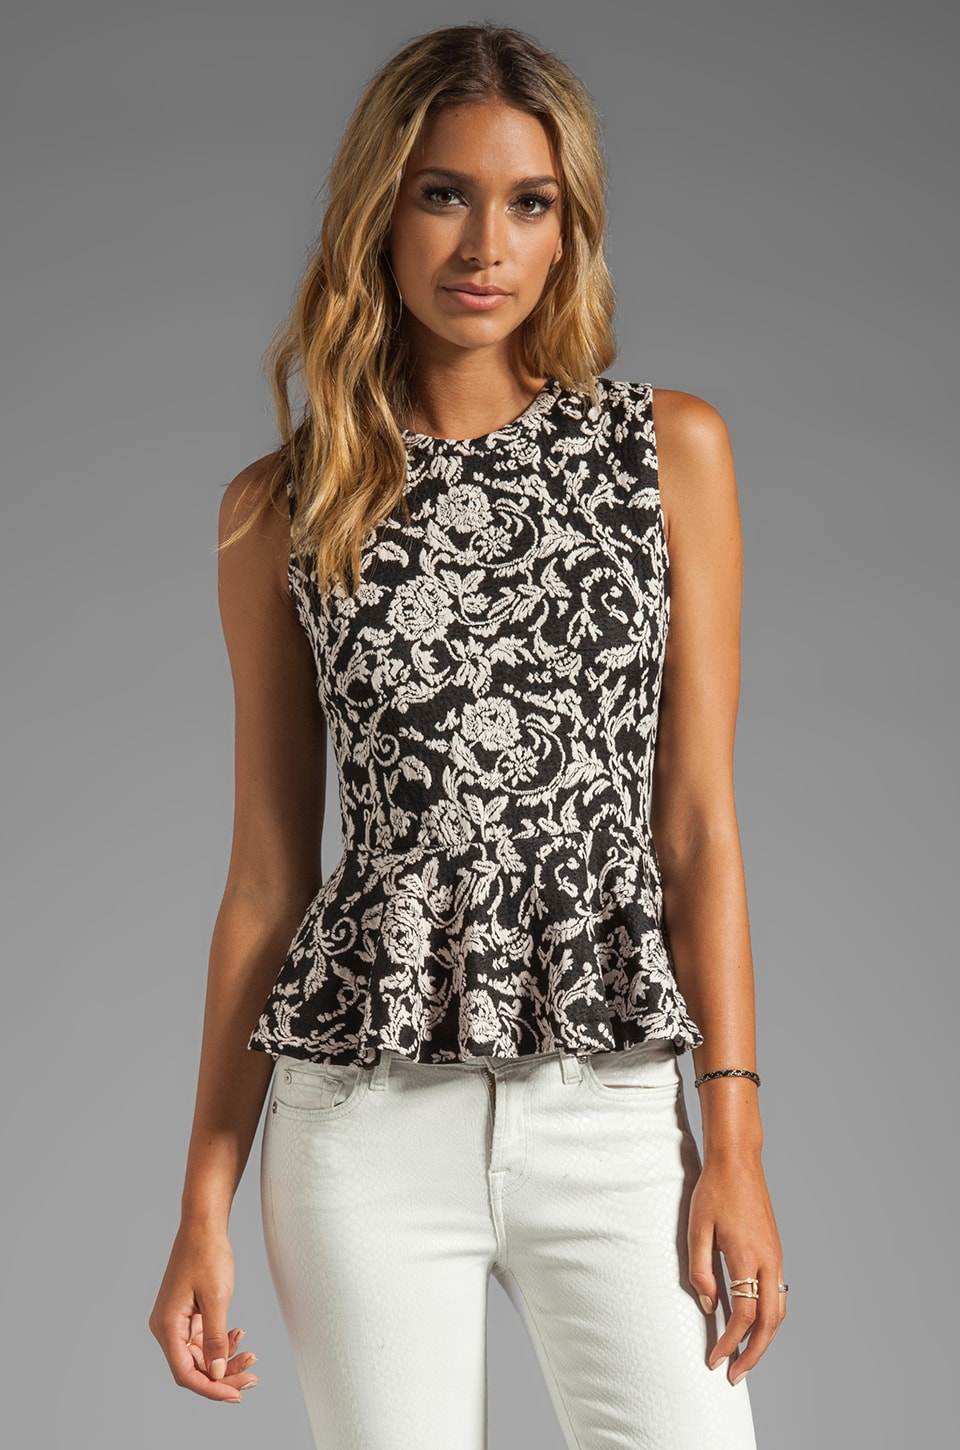 Dolce Vita Tiffany Scroll Ponte Top in Black